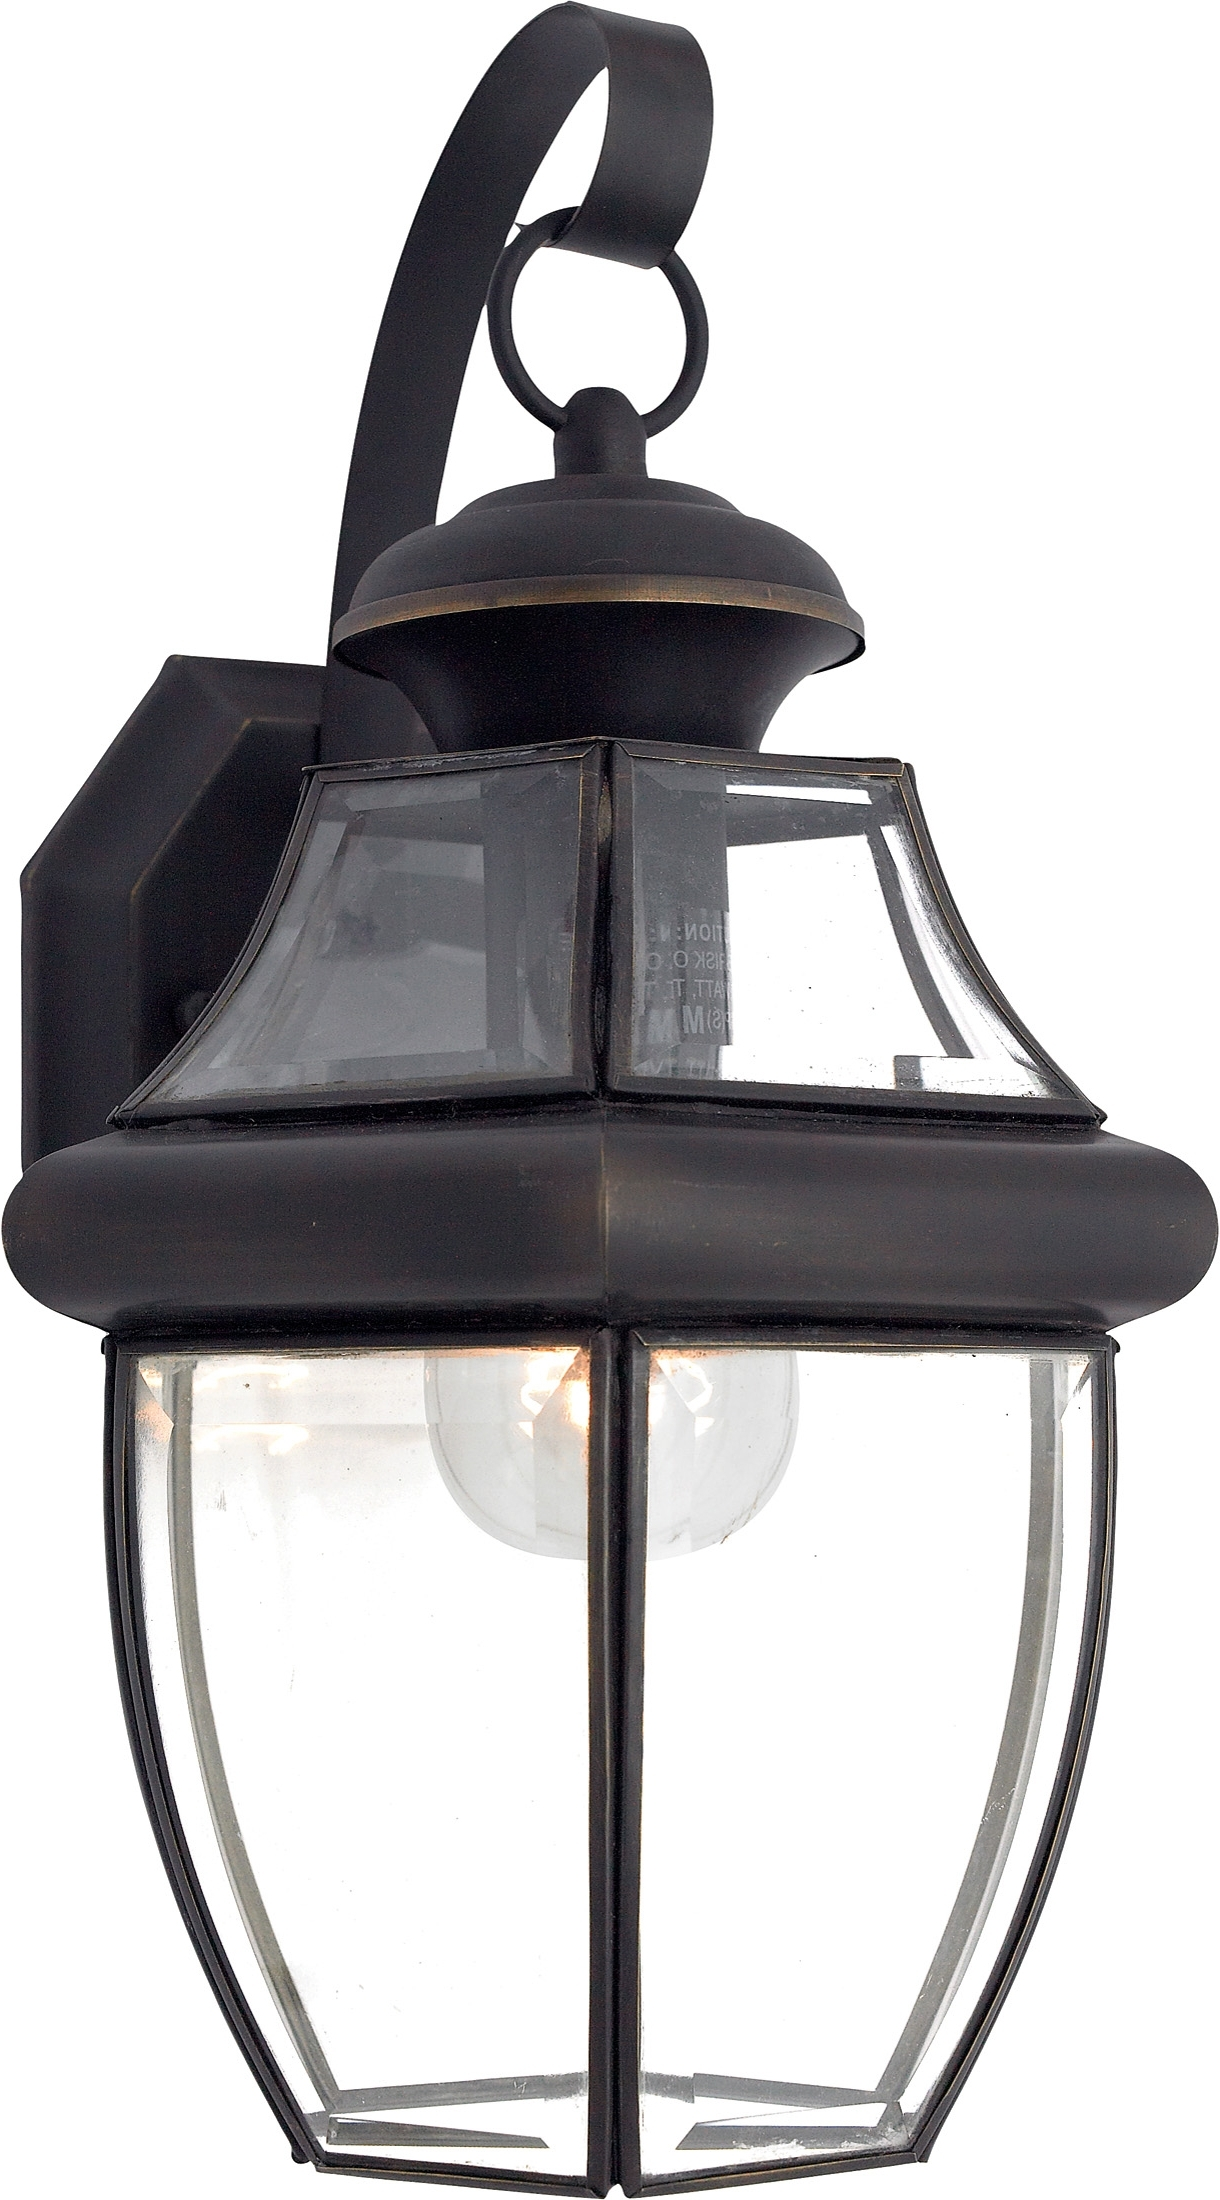 Famous Home Decor + Home Lighting Blog » Blog Archive » Quoizel Lighting Pertaining To Traditional Outdoor Wall Lights (View 11 of 20)